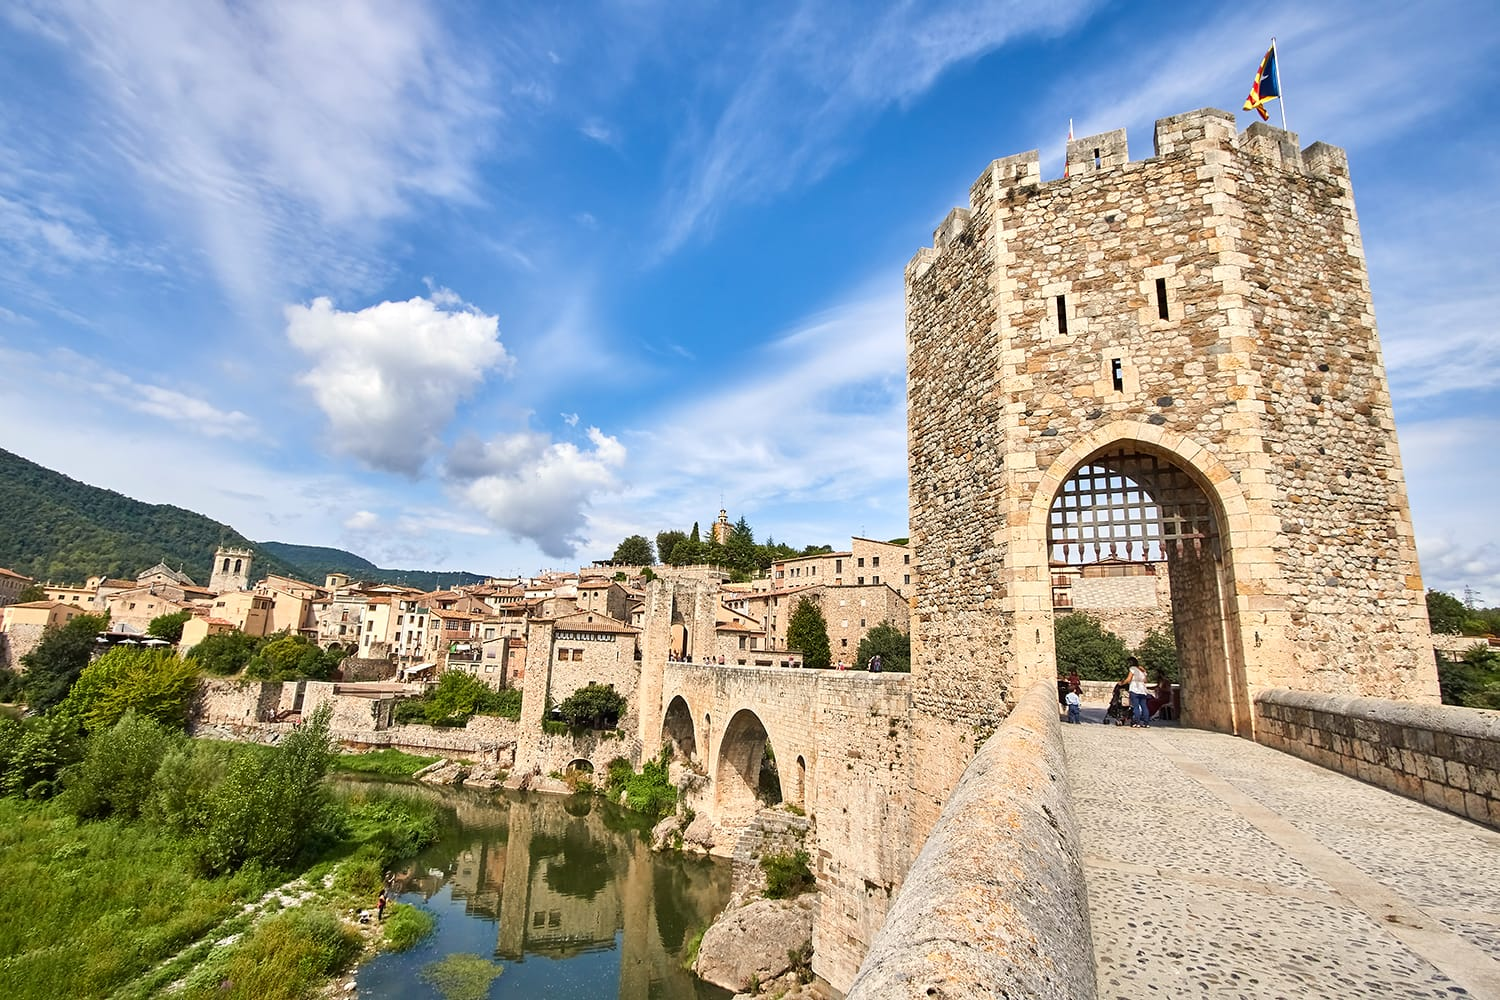 Besalu is a medieval village in Girona province in Spain